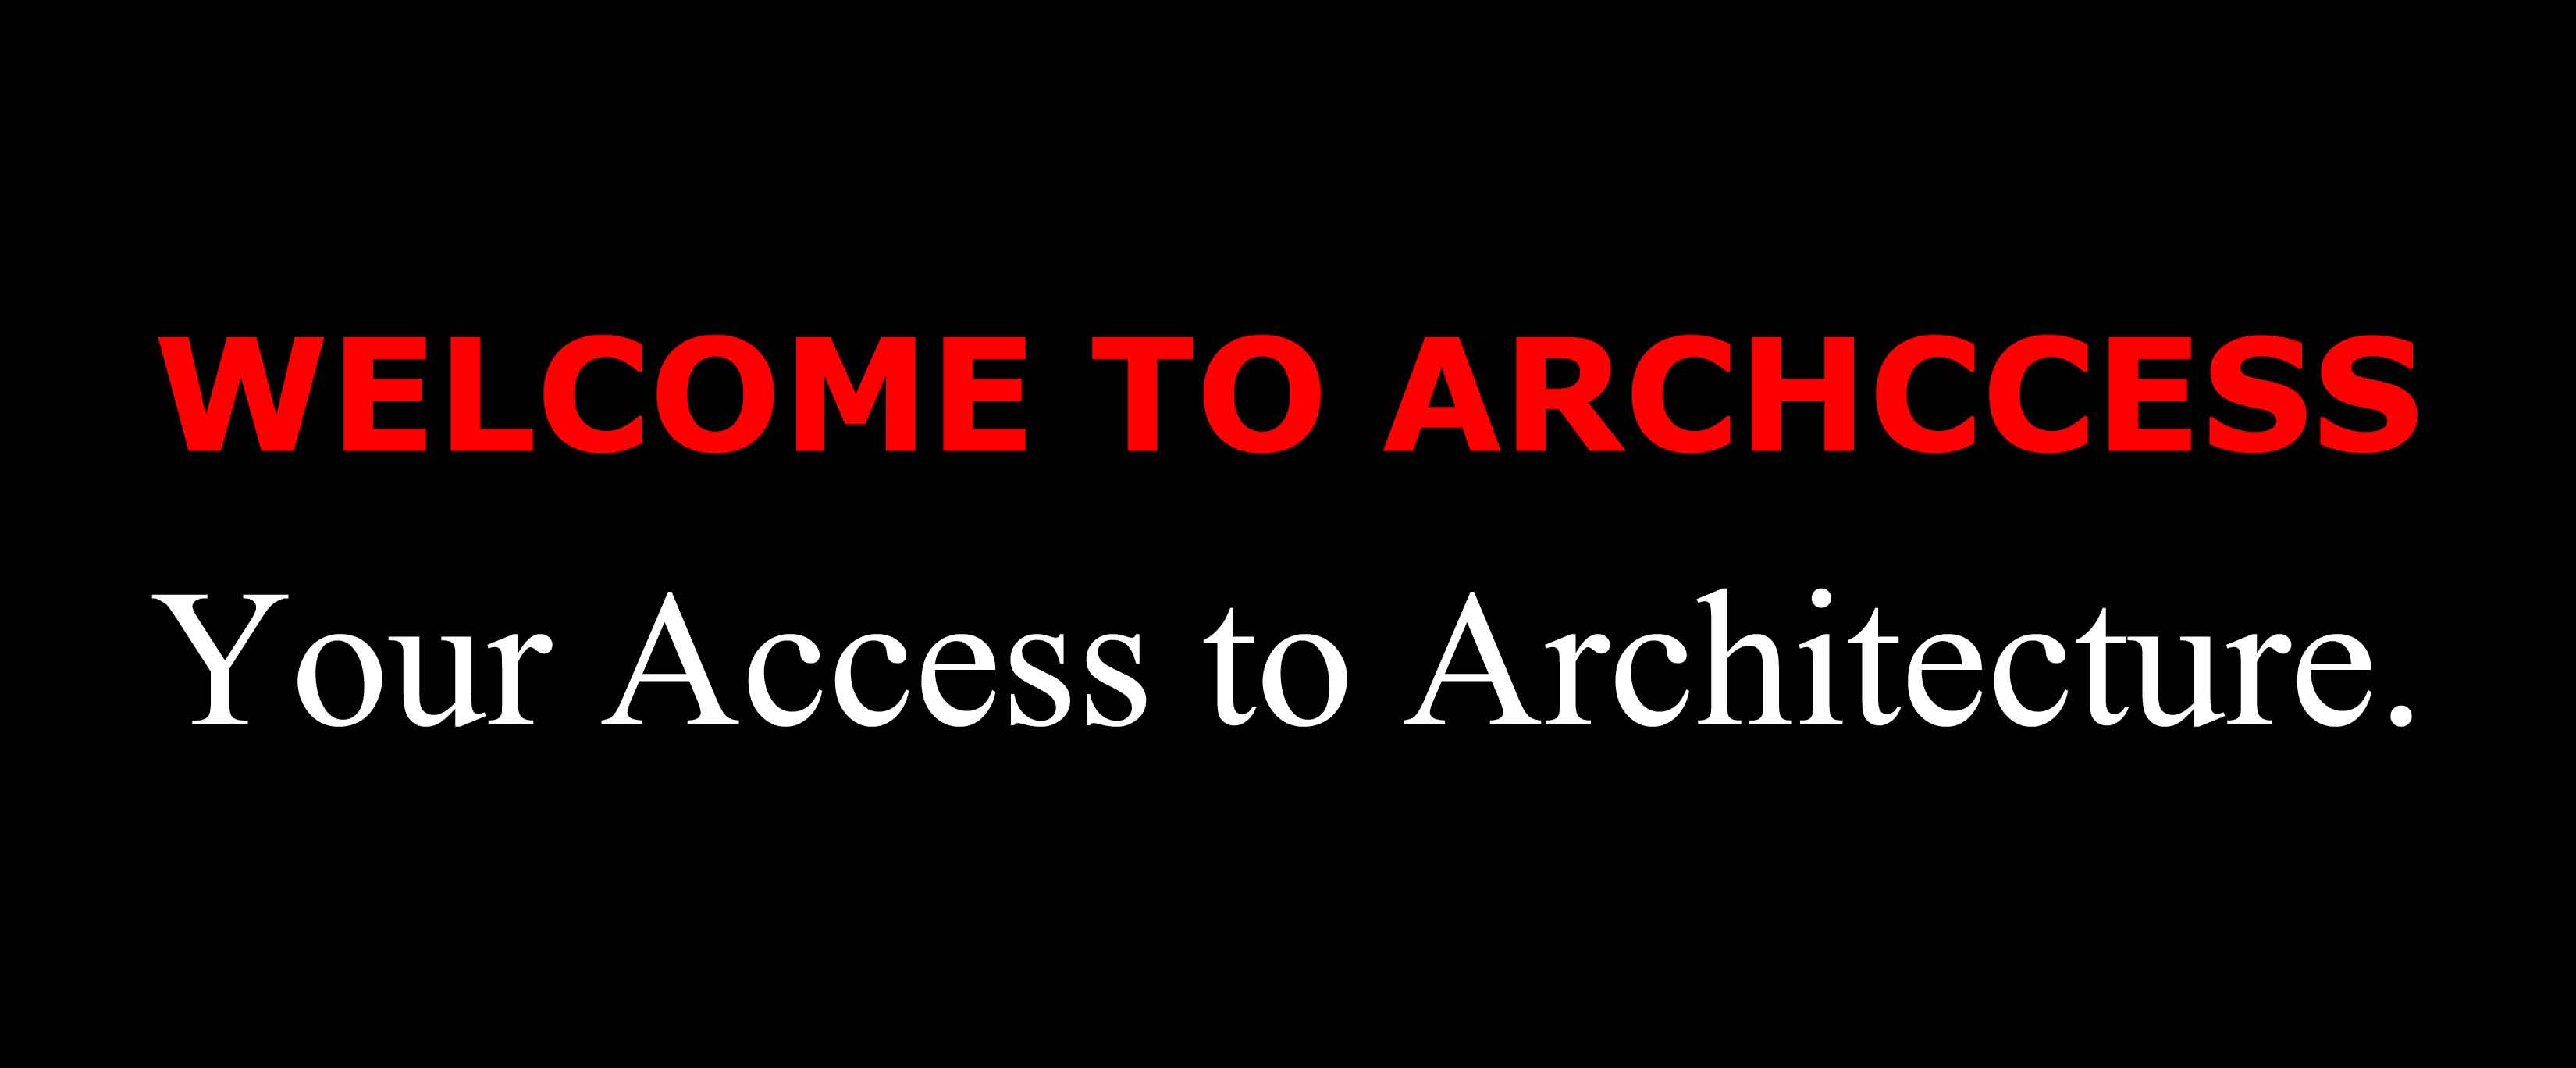 Welcome to Archccess